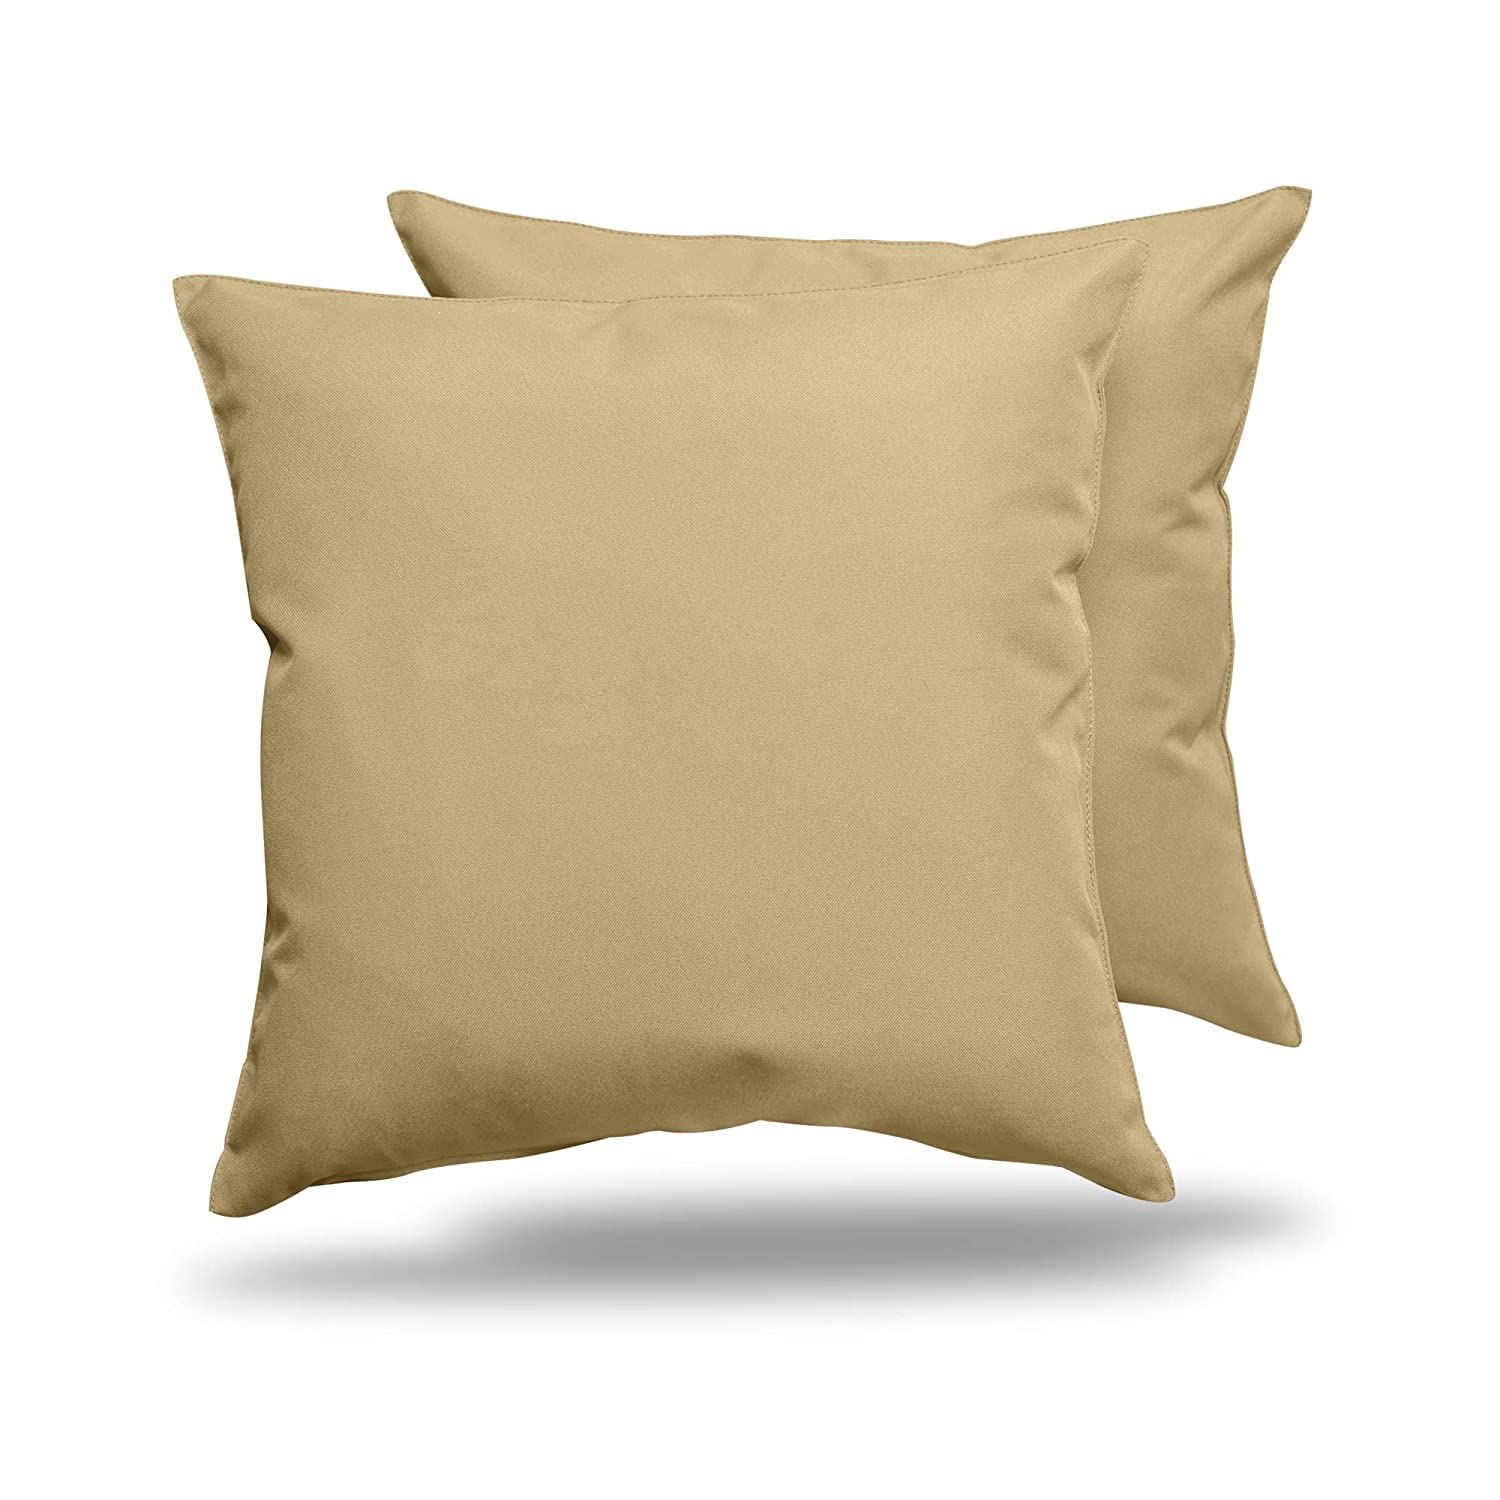 ALEXANDRA S SECRET HOME COLLECTION Outdoor Decorative Throw Pillow Pack of 2 Stuffed Throw Pillows UV Resistant Water Proof Complete Pillow with Polyester Fill Insert Solid 18 x 18 , Khaki